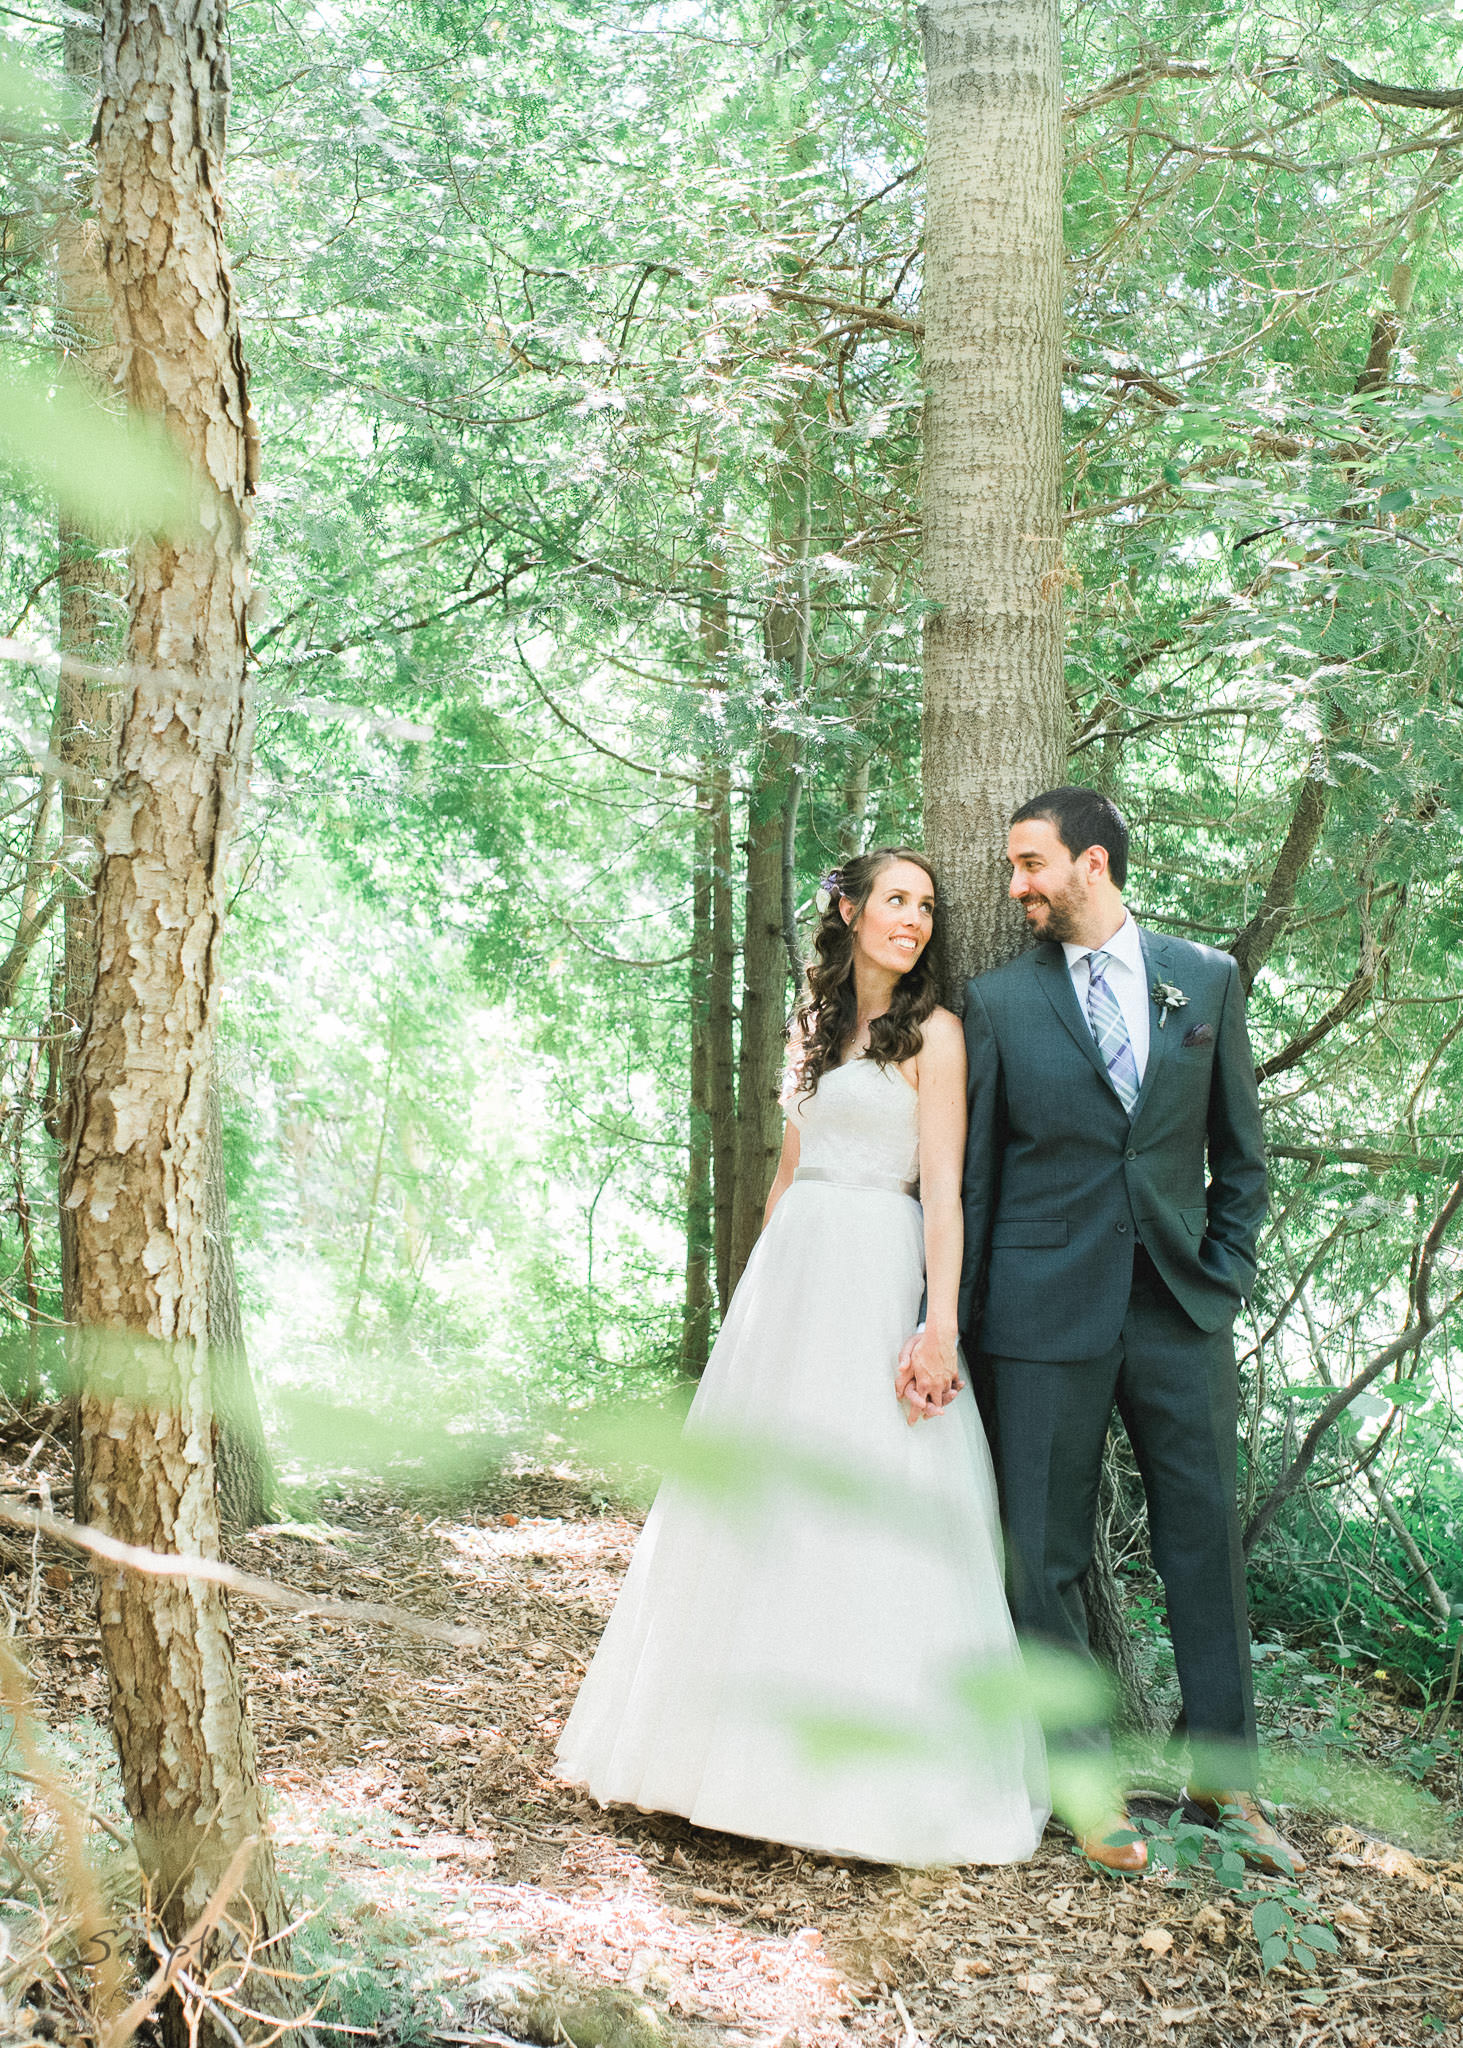 Bride and groom pose in the forrest at Alton Mill